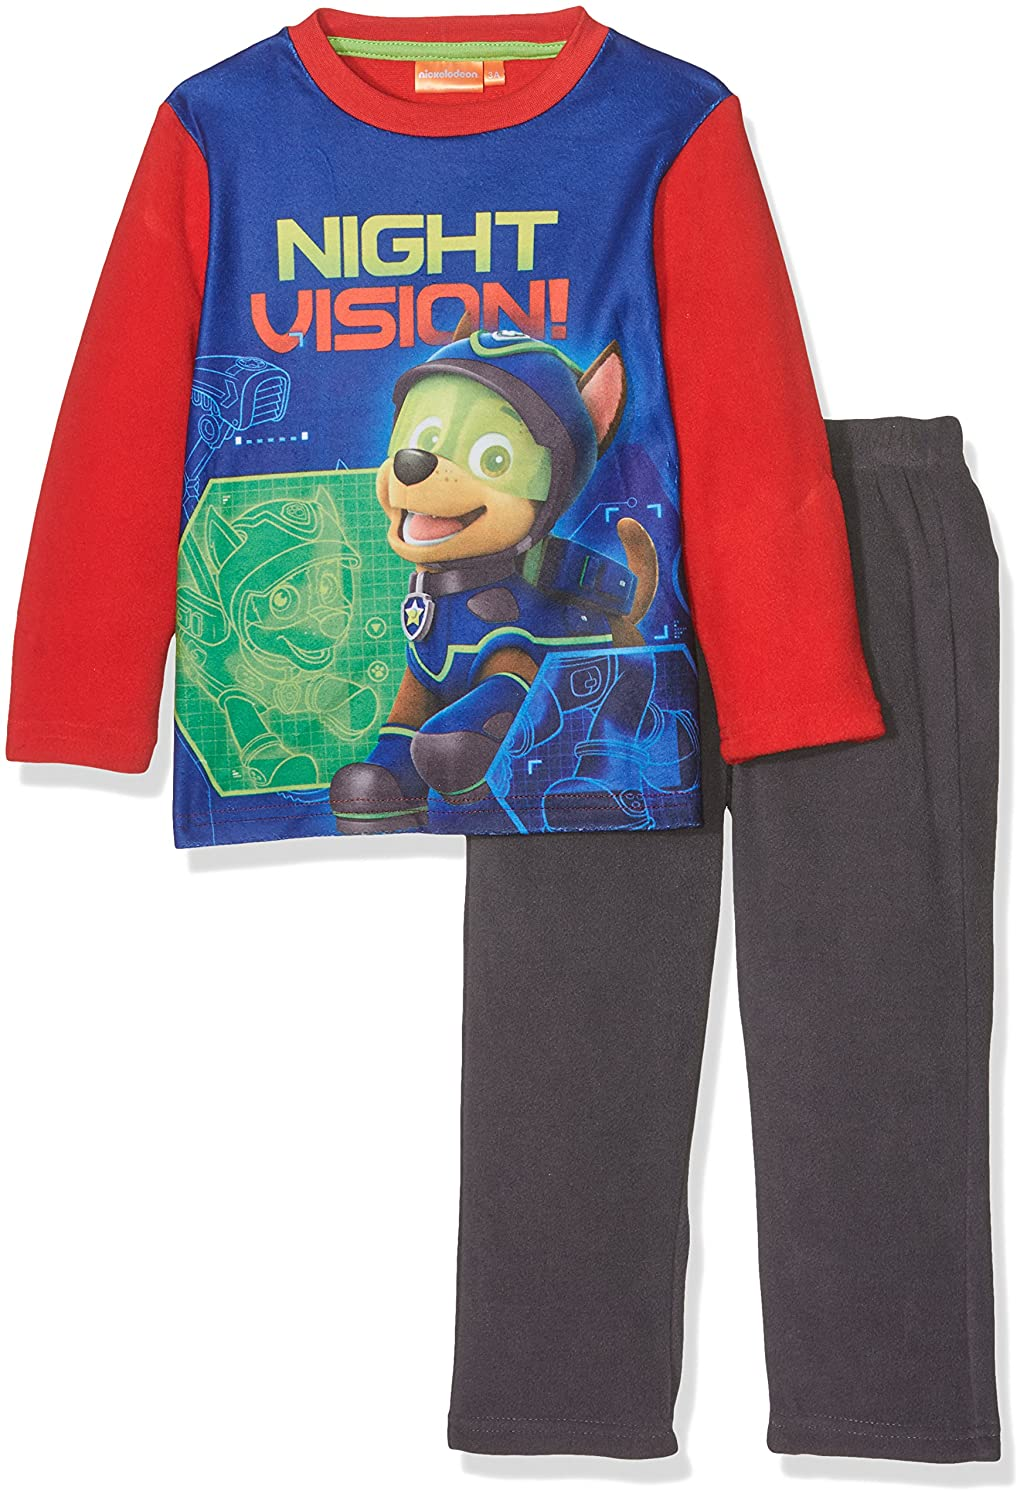 Paw Patrol Chase and and Marshall Night Vision Fleece Pyjama Set New 2017-2018 PAW PATROL BOYS